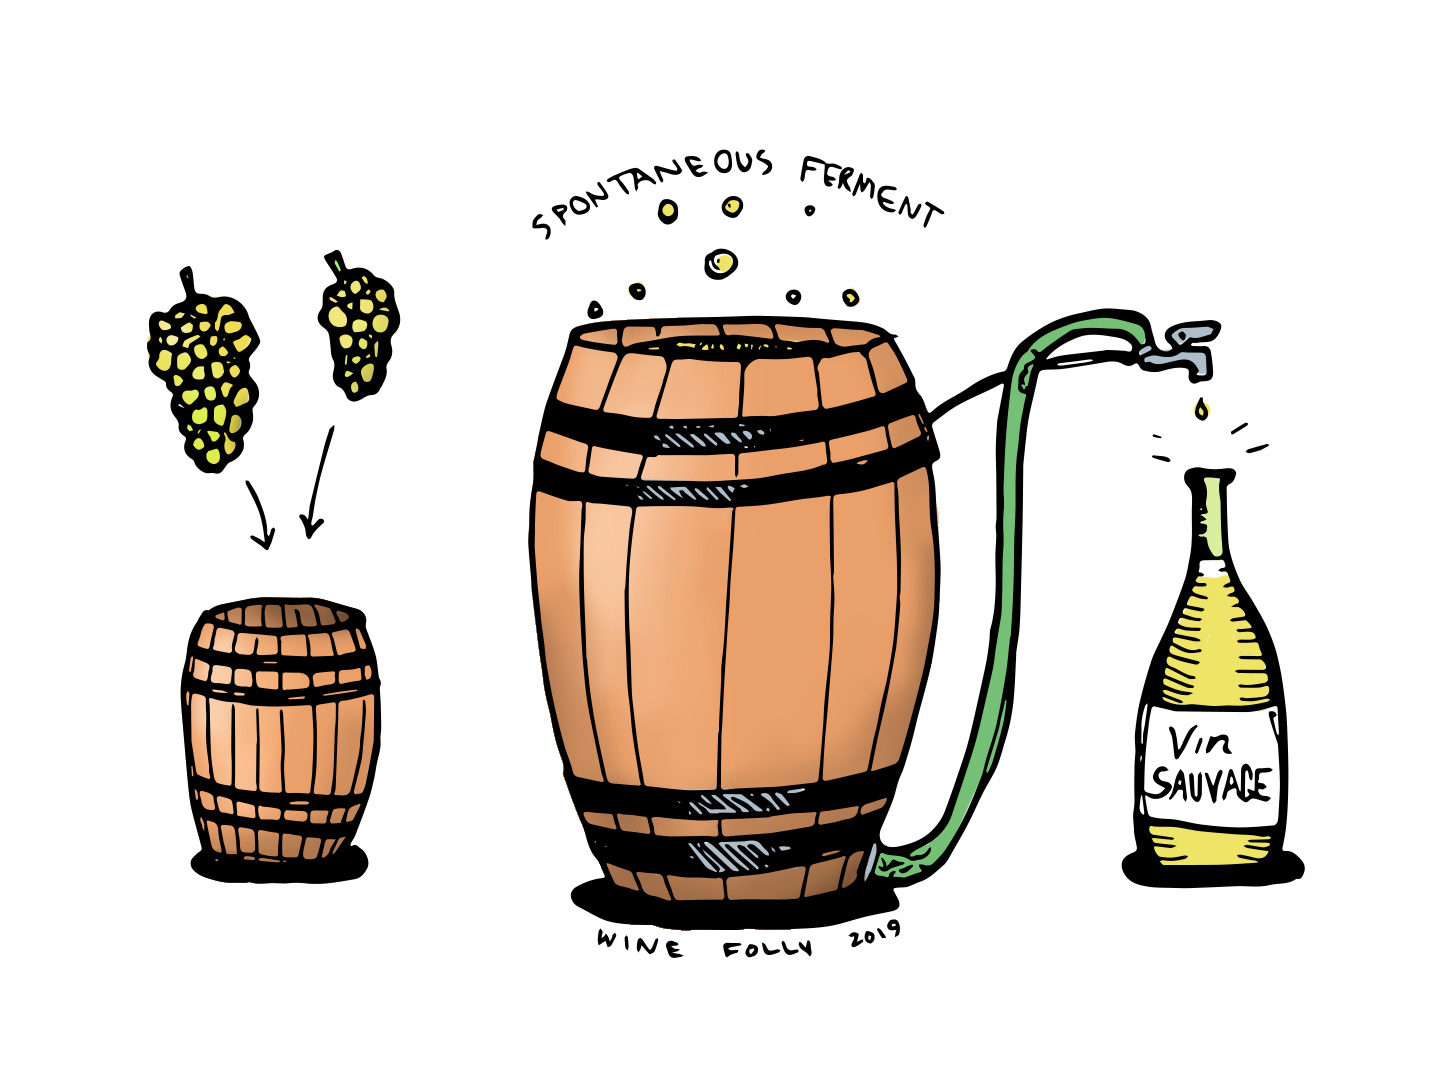 Spontaneous wild fermentation illustration native yeast by wine folly